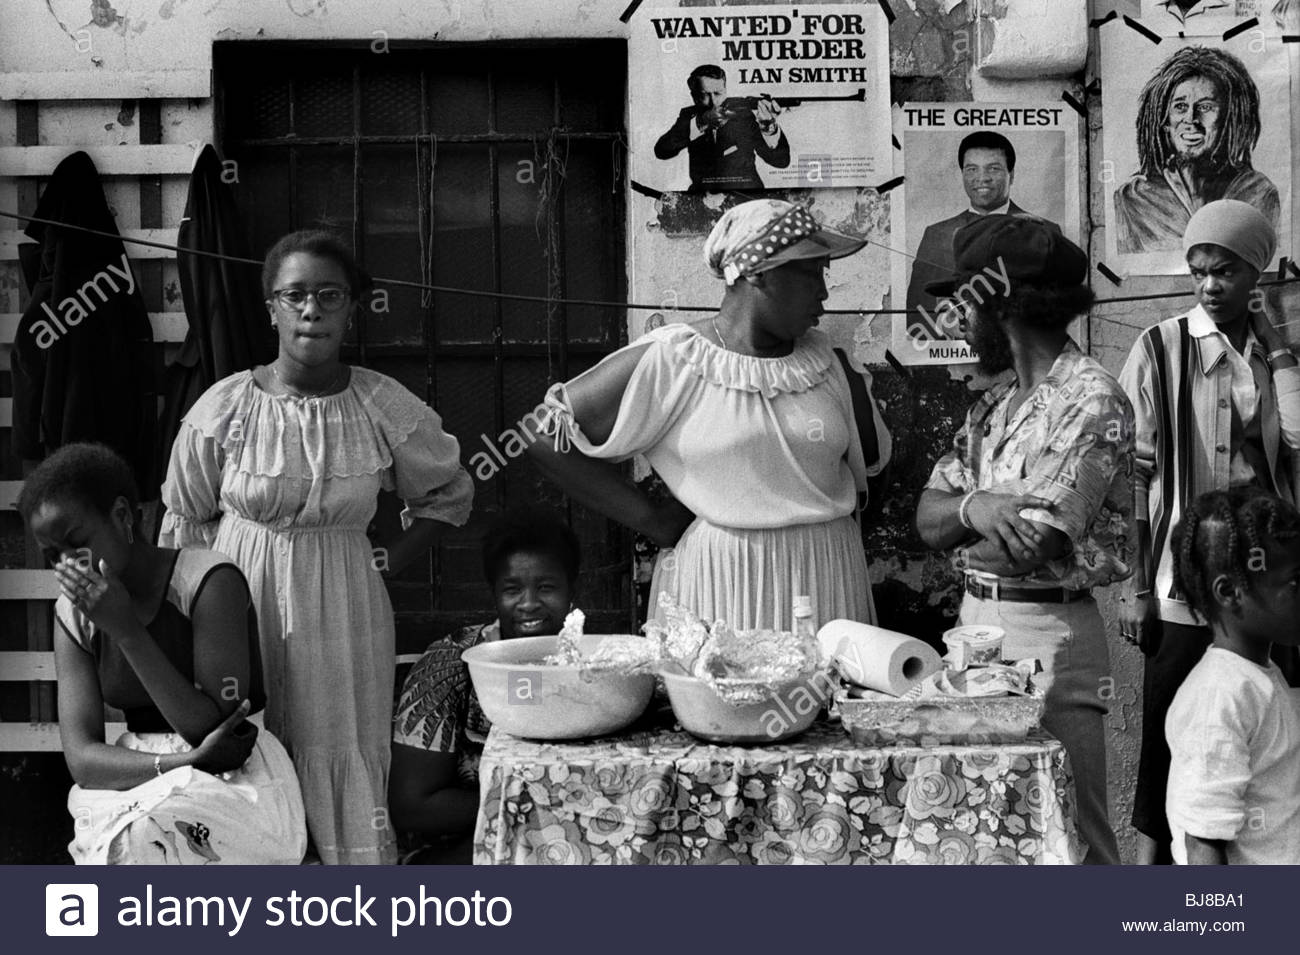 Jamaicans at the Notting Hill Carnival in the 1970s - Stock Image